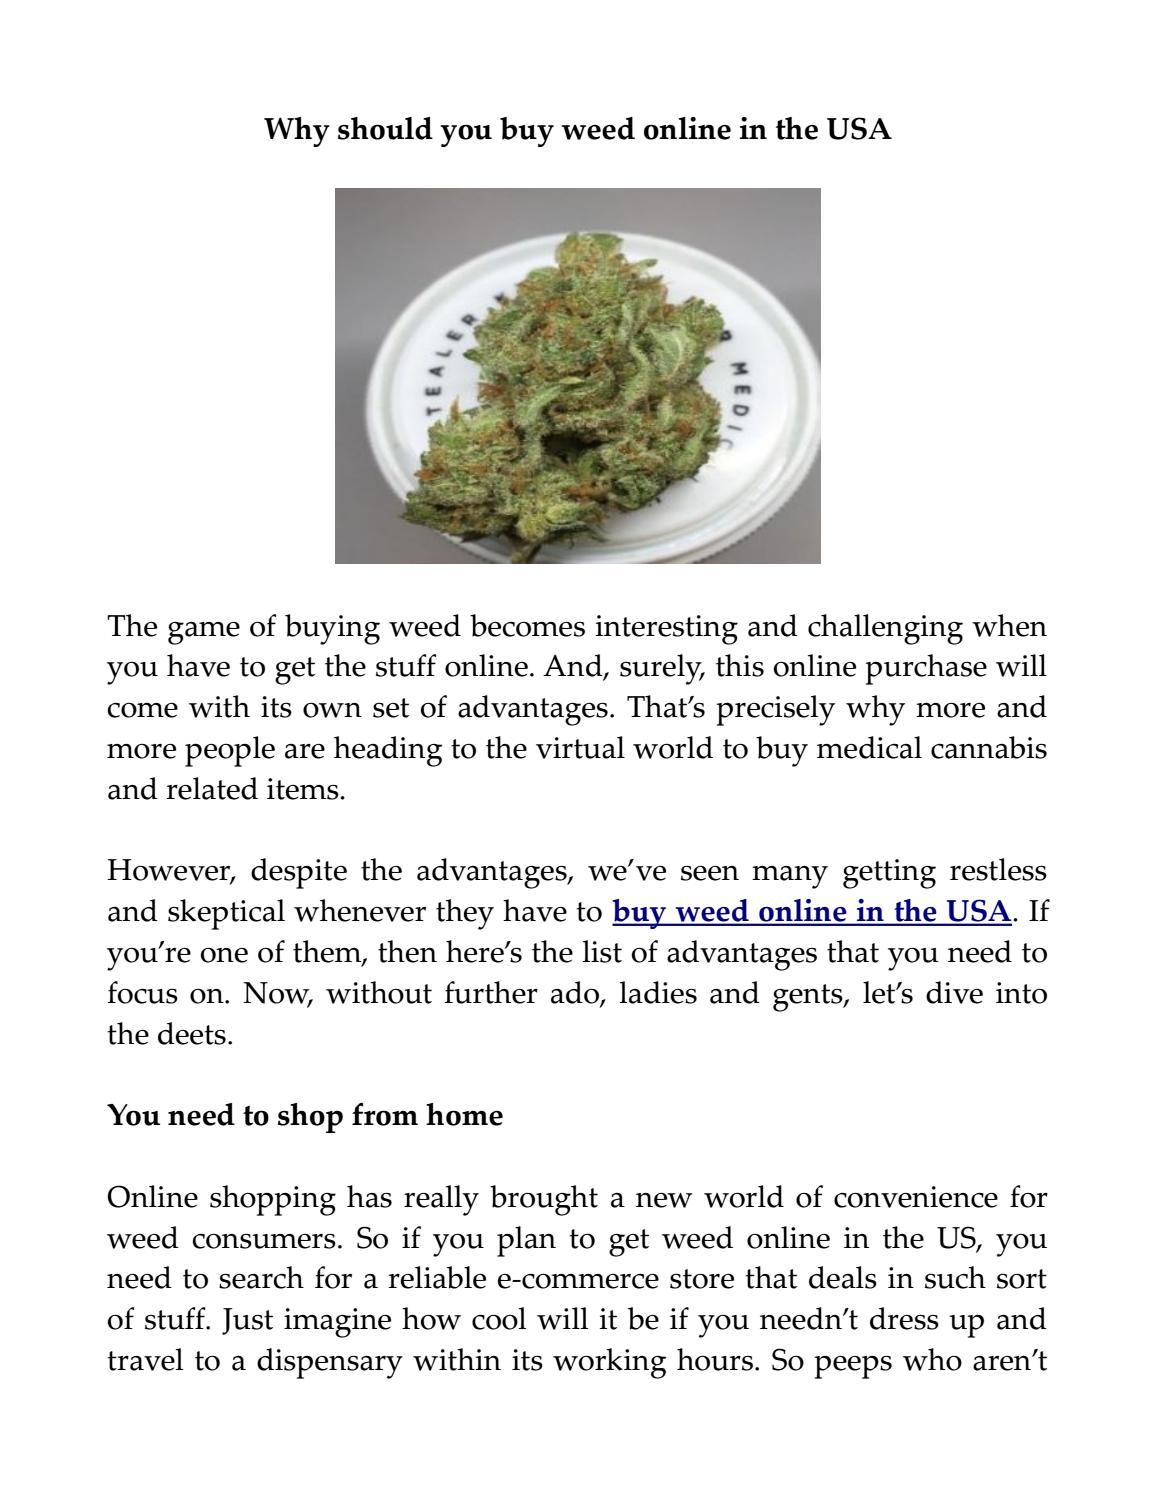 Why should you buy weed online in the USA by